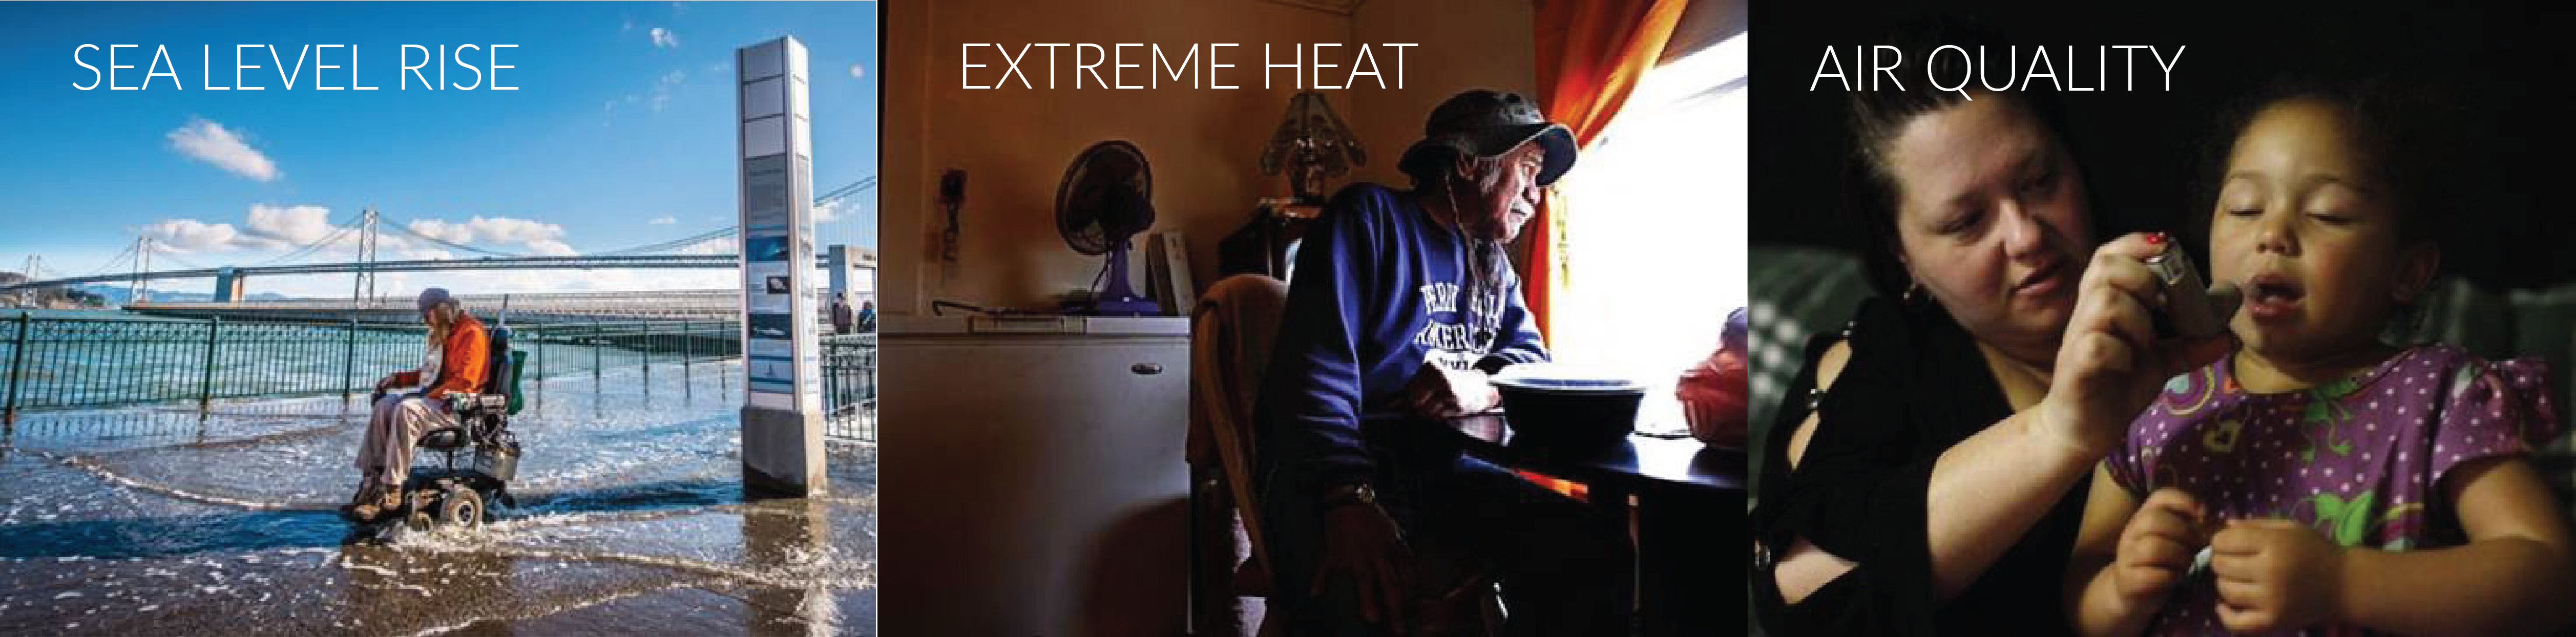 Elderly man indoors during an extreme heat event